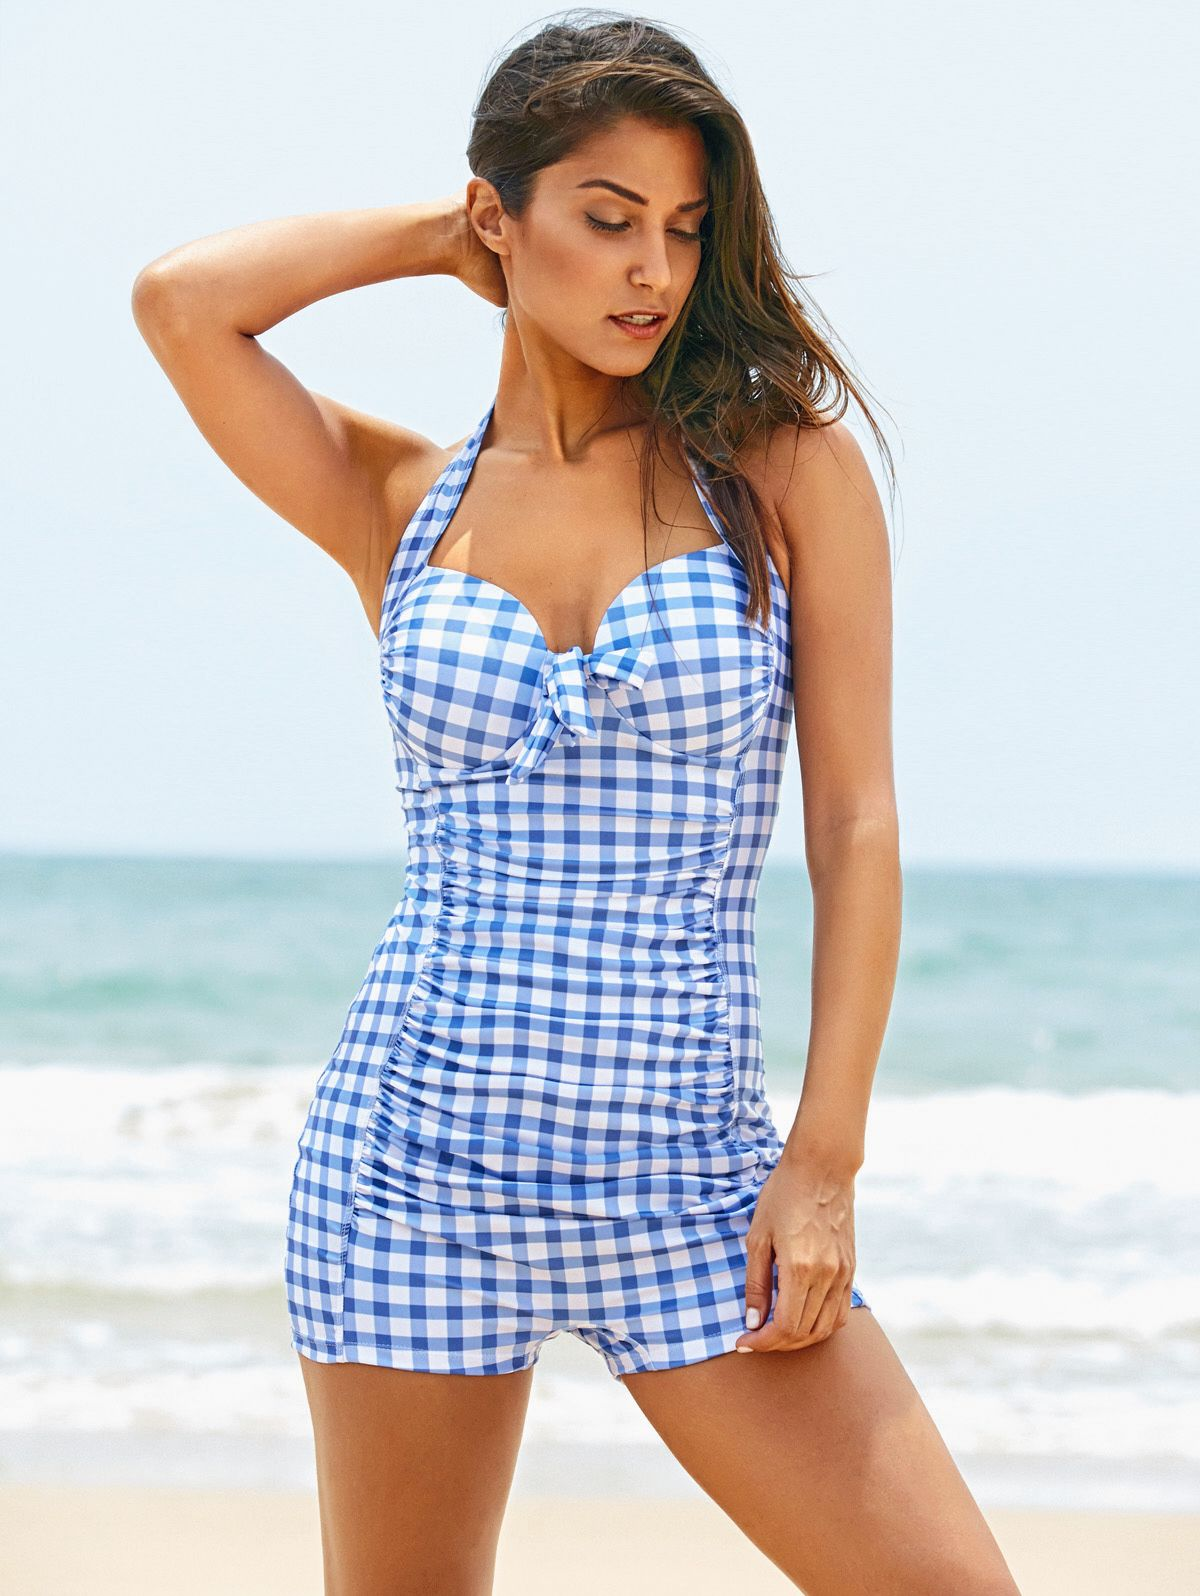 d20cb0eb5f7ef6 Cute Halter Plaid Print Boy Leg One-Piece Swimwear For Women ...